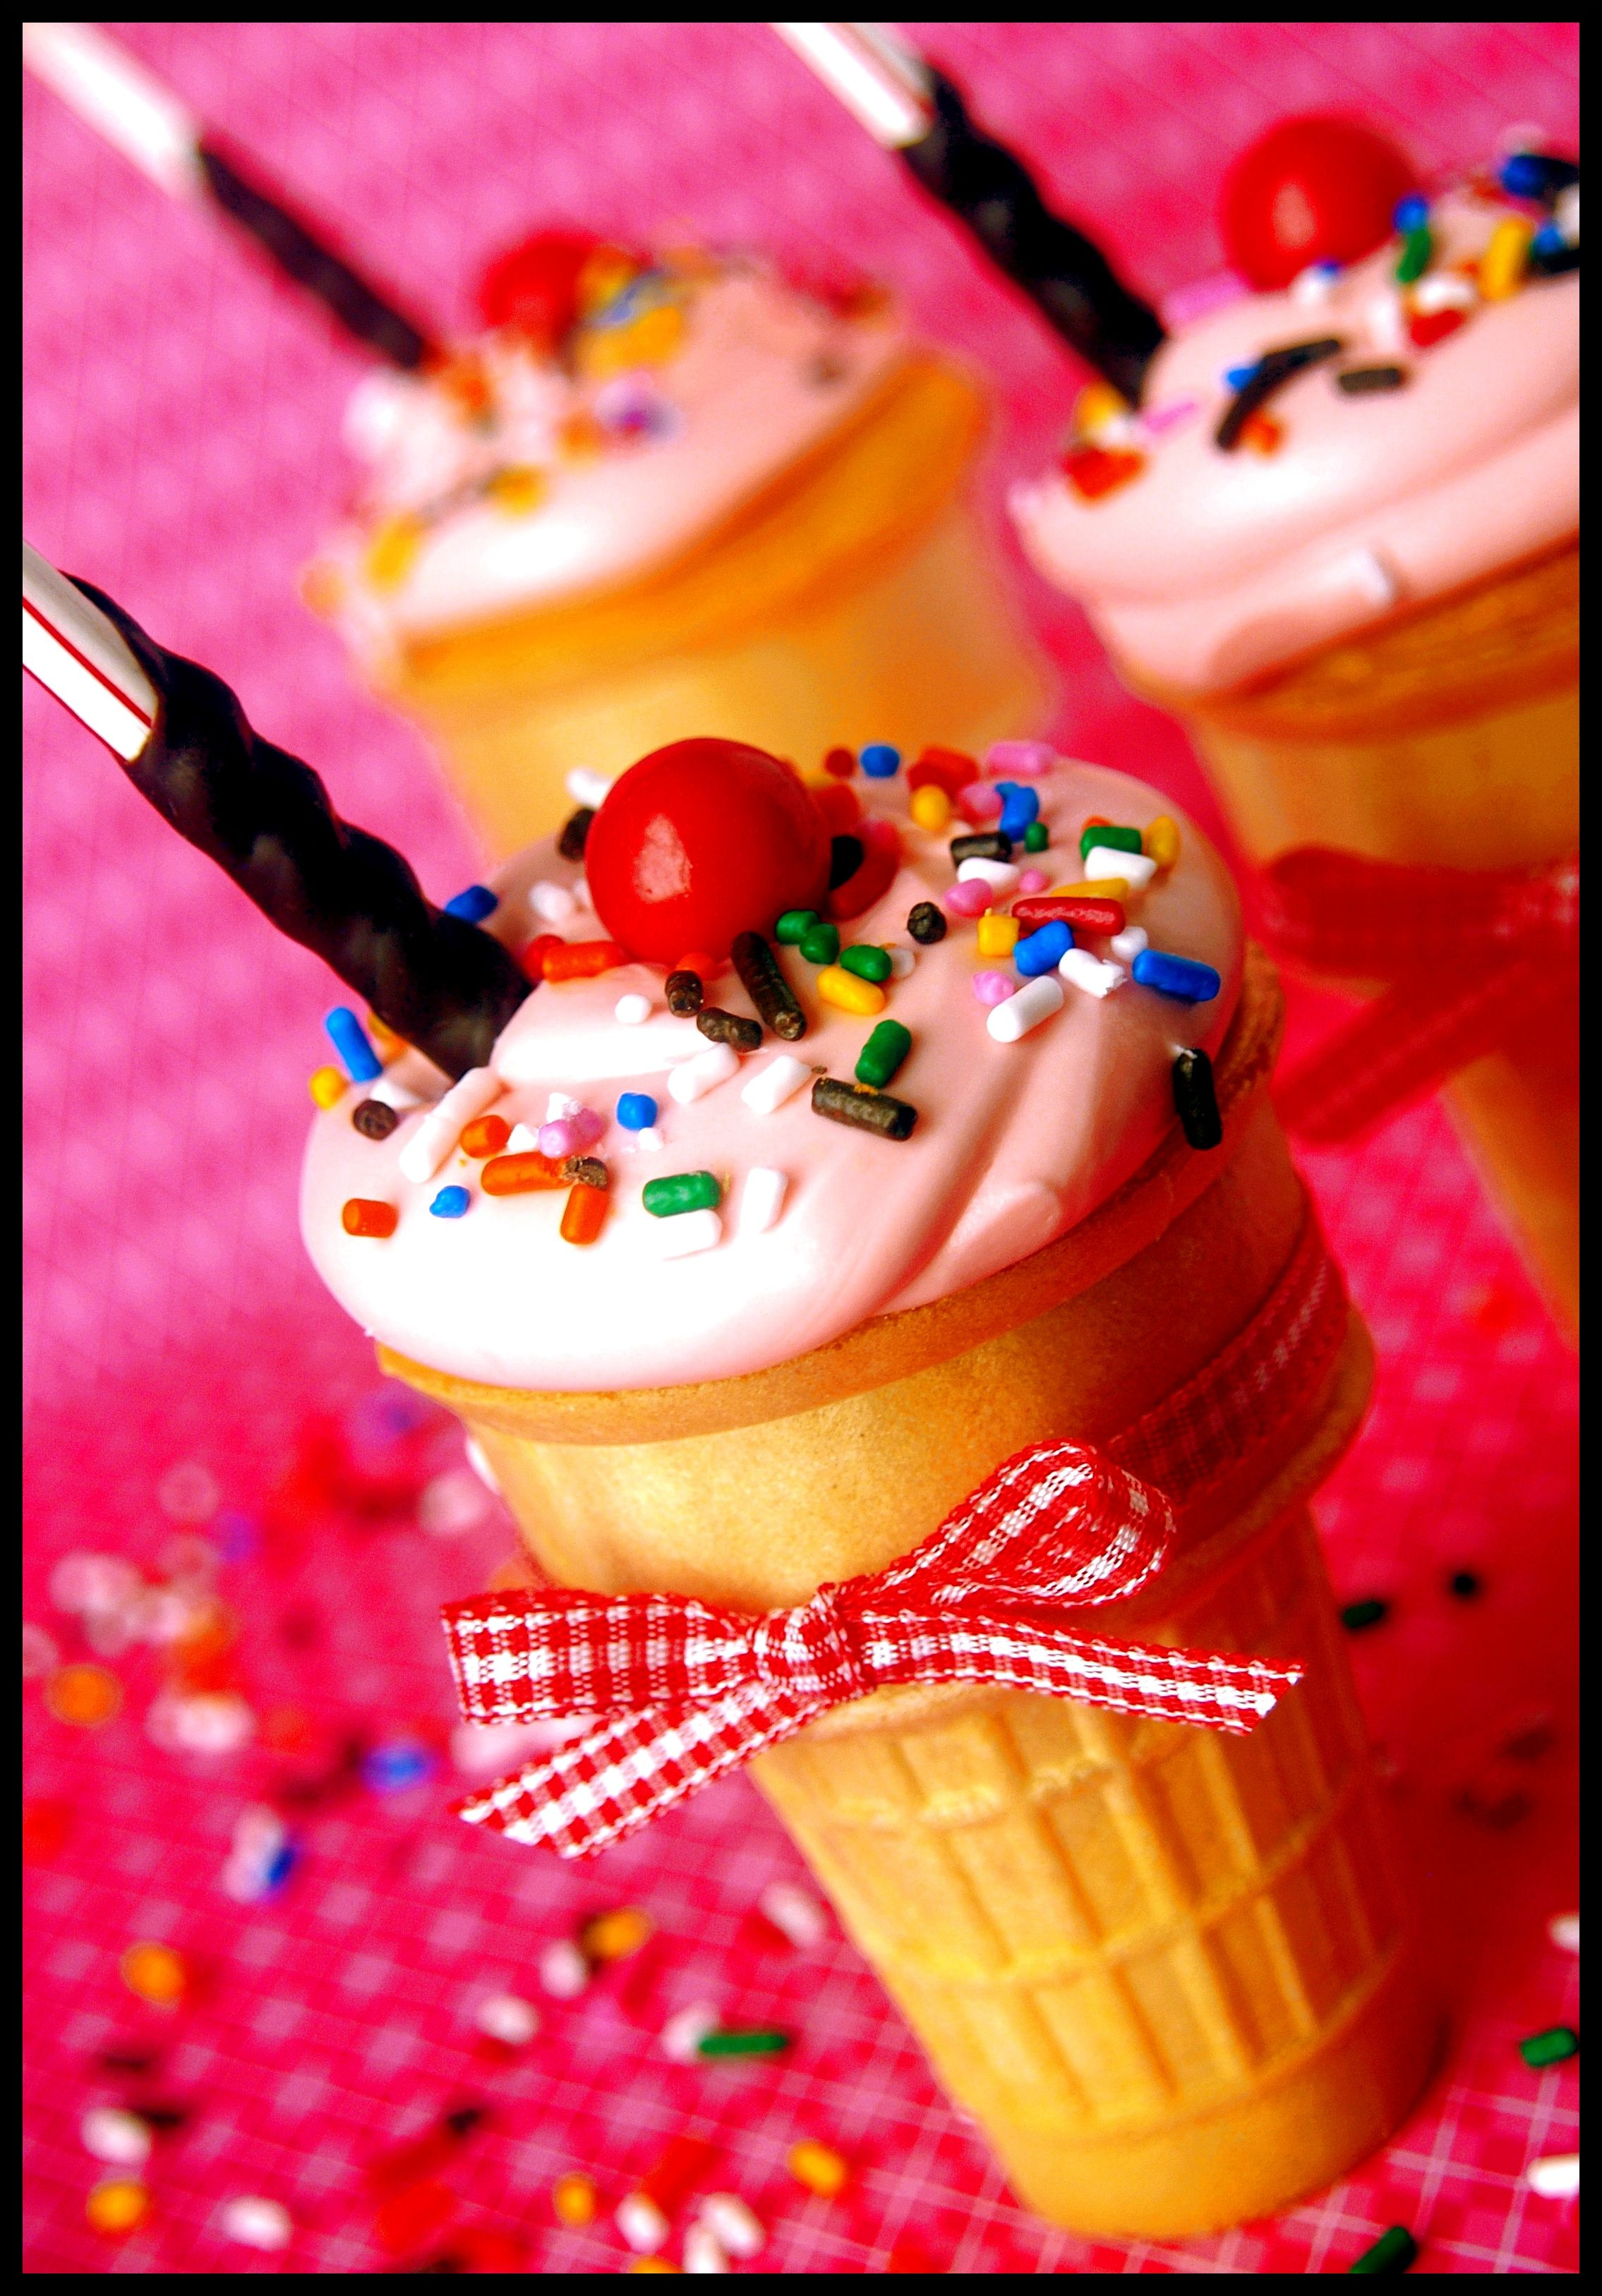 These are too cute! cake in an ice cream cone...why not top it with ice cream?  then you can have both in one shot!